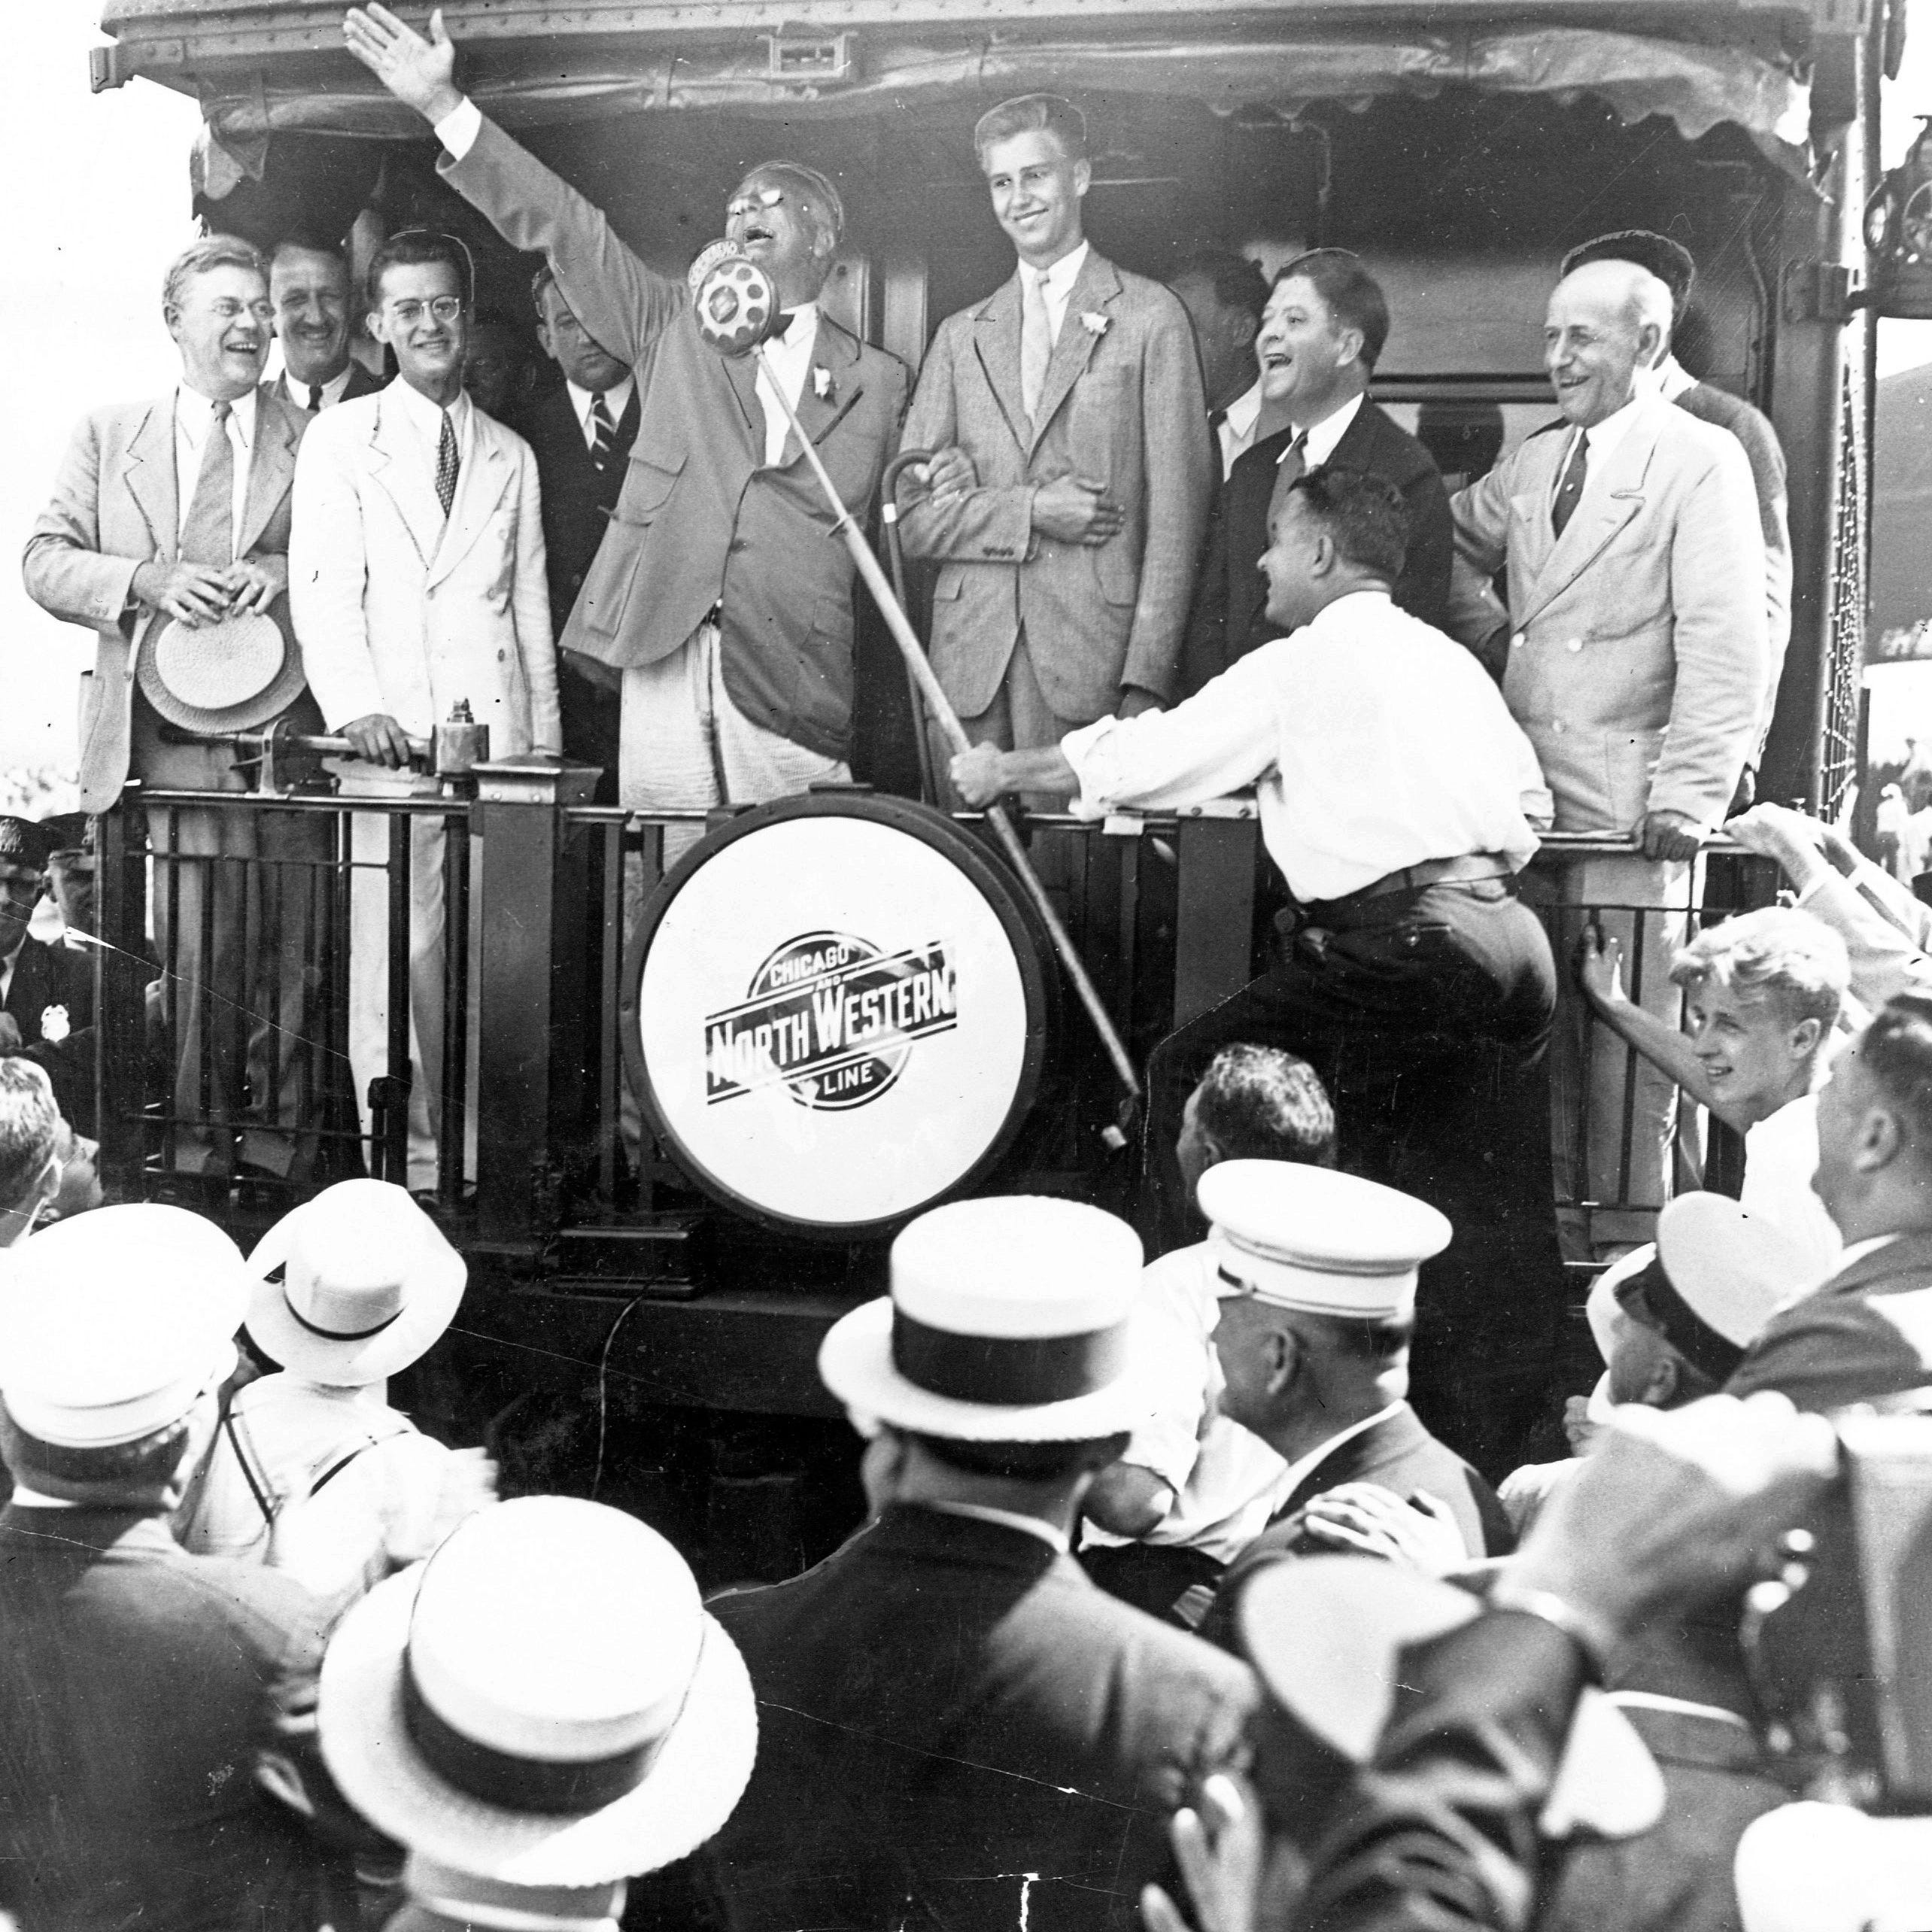 Cheese jokes, huge crowds, floral couches: Five times sitting presidents visited Wisconsin